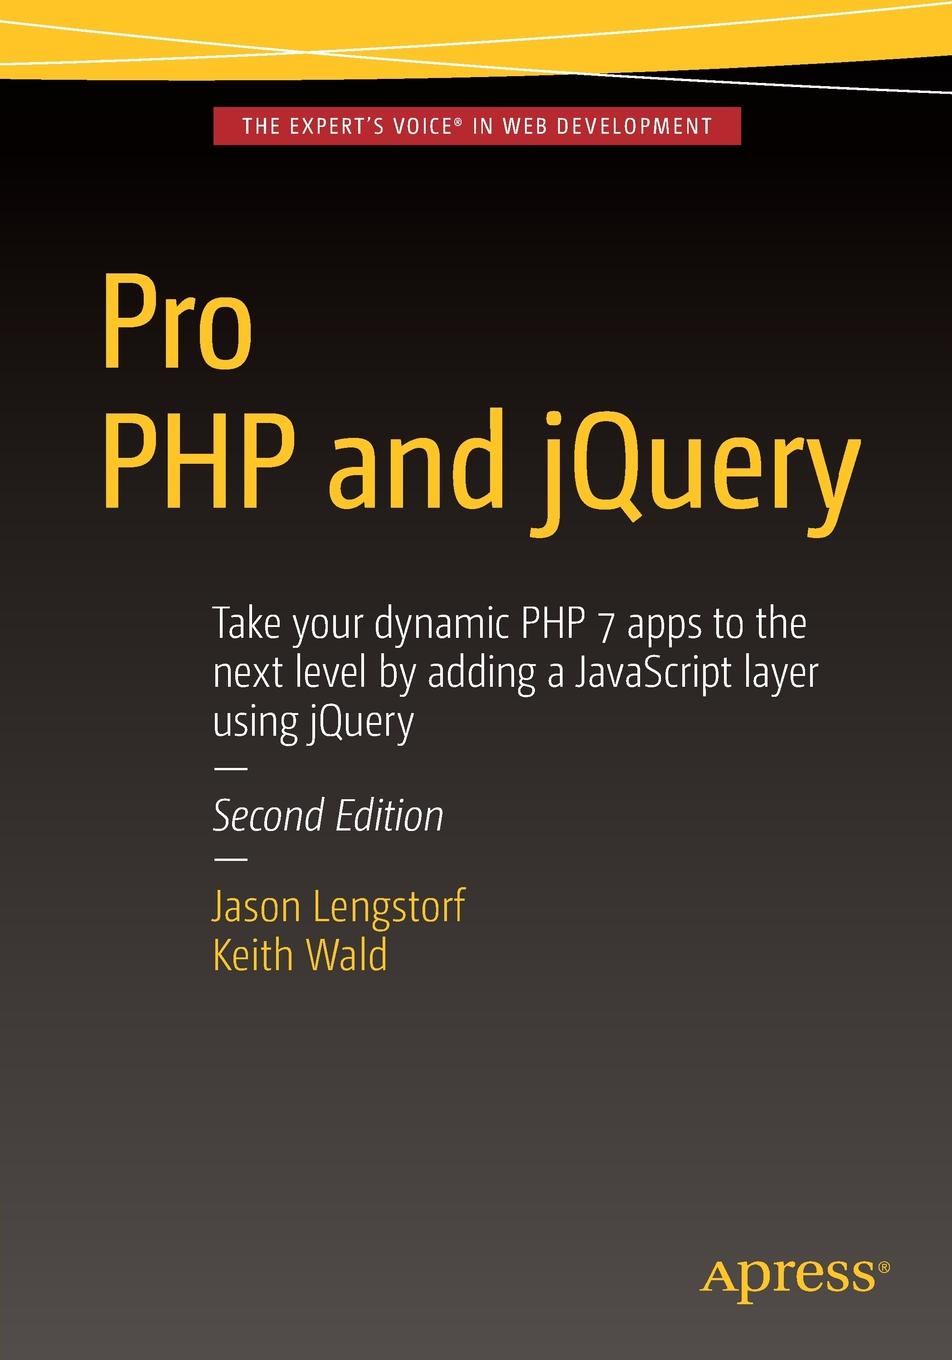 Keith Wald, Jason Lengstorf Pro PHP and jQuery